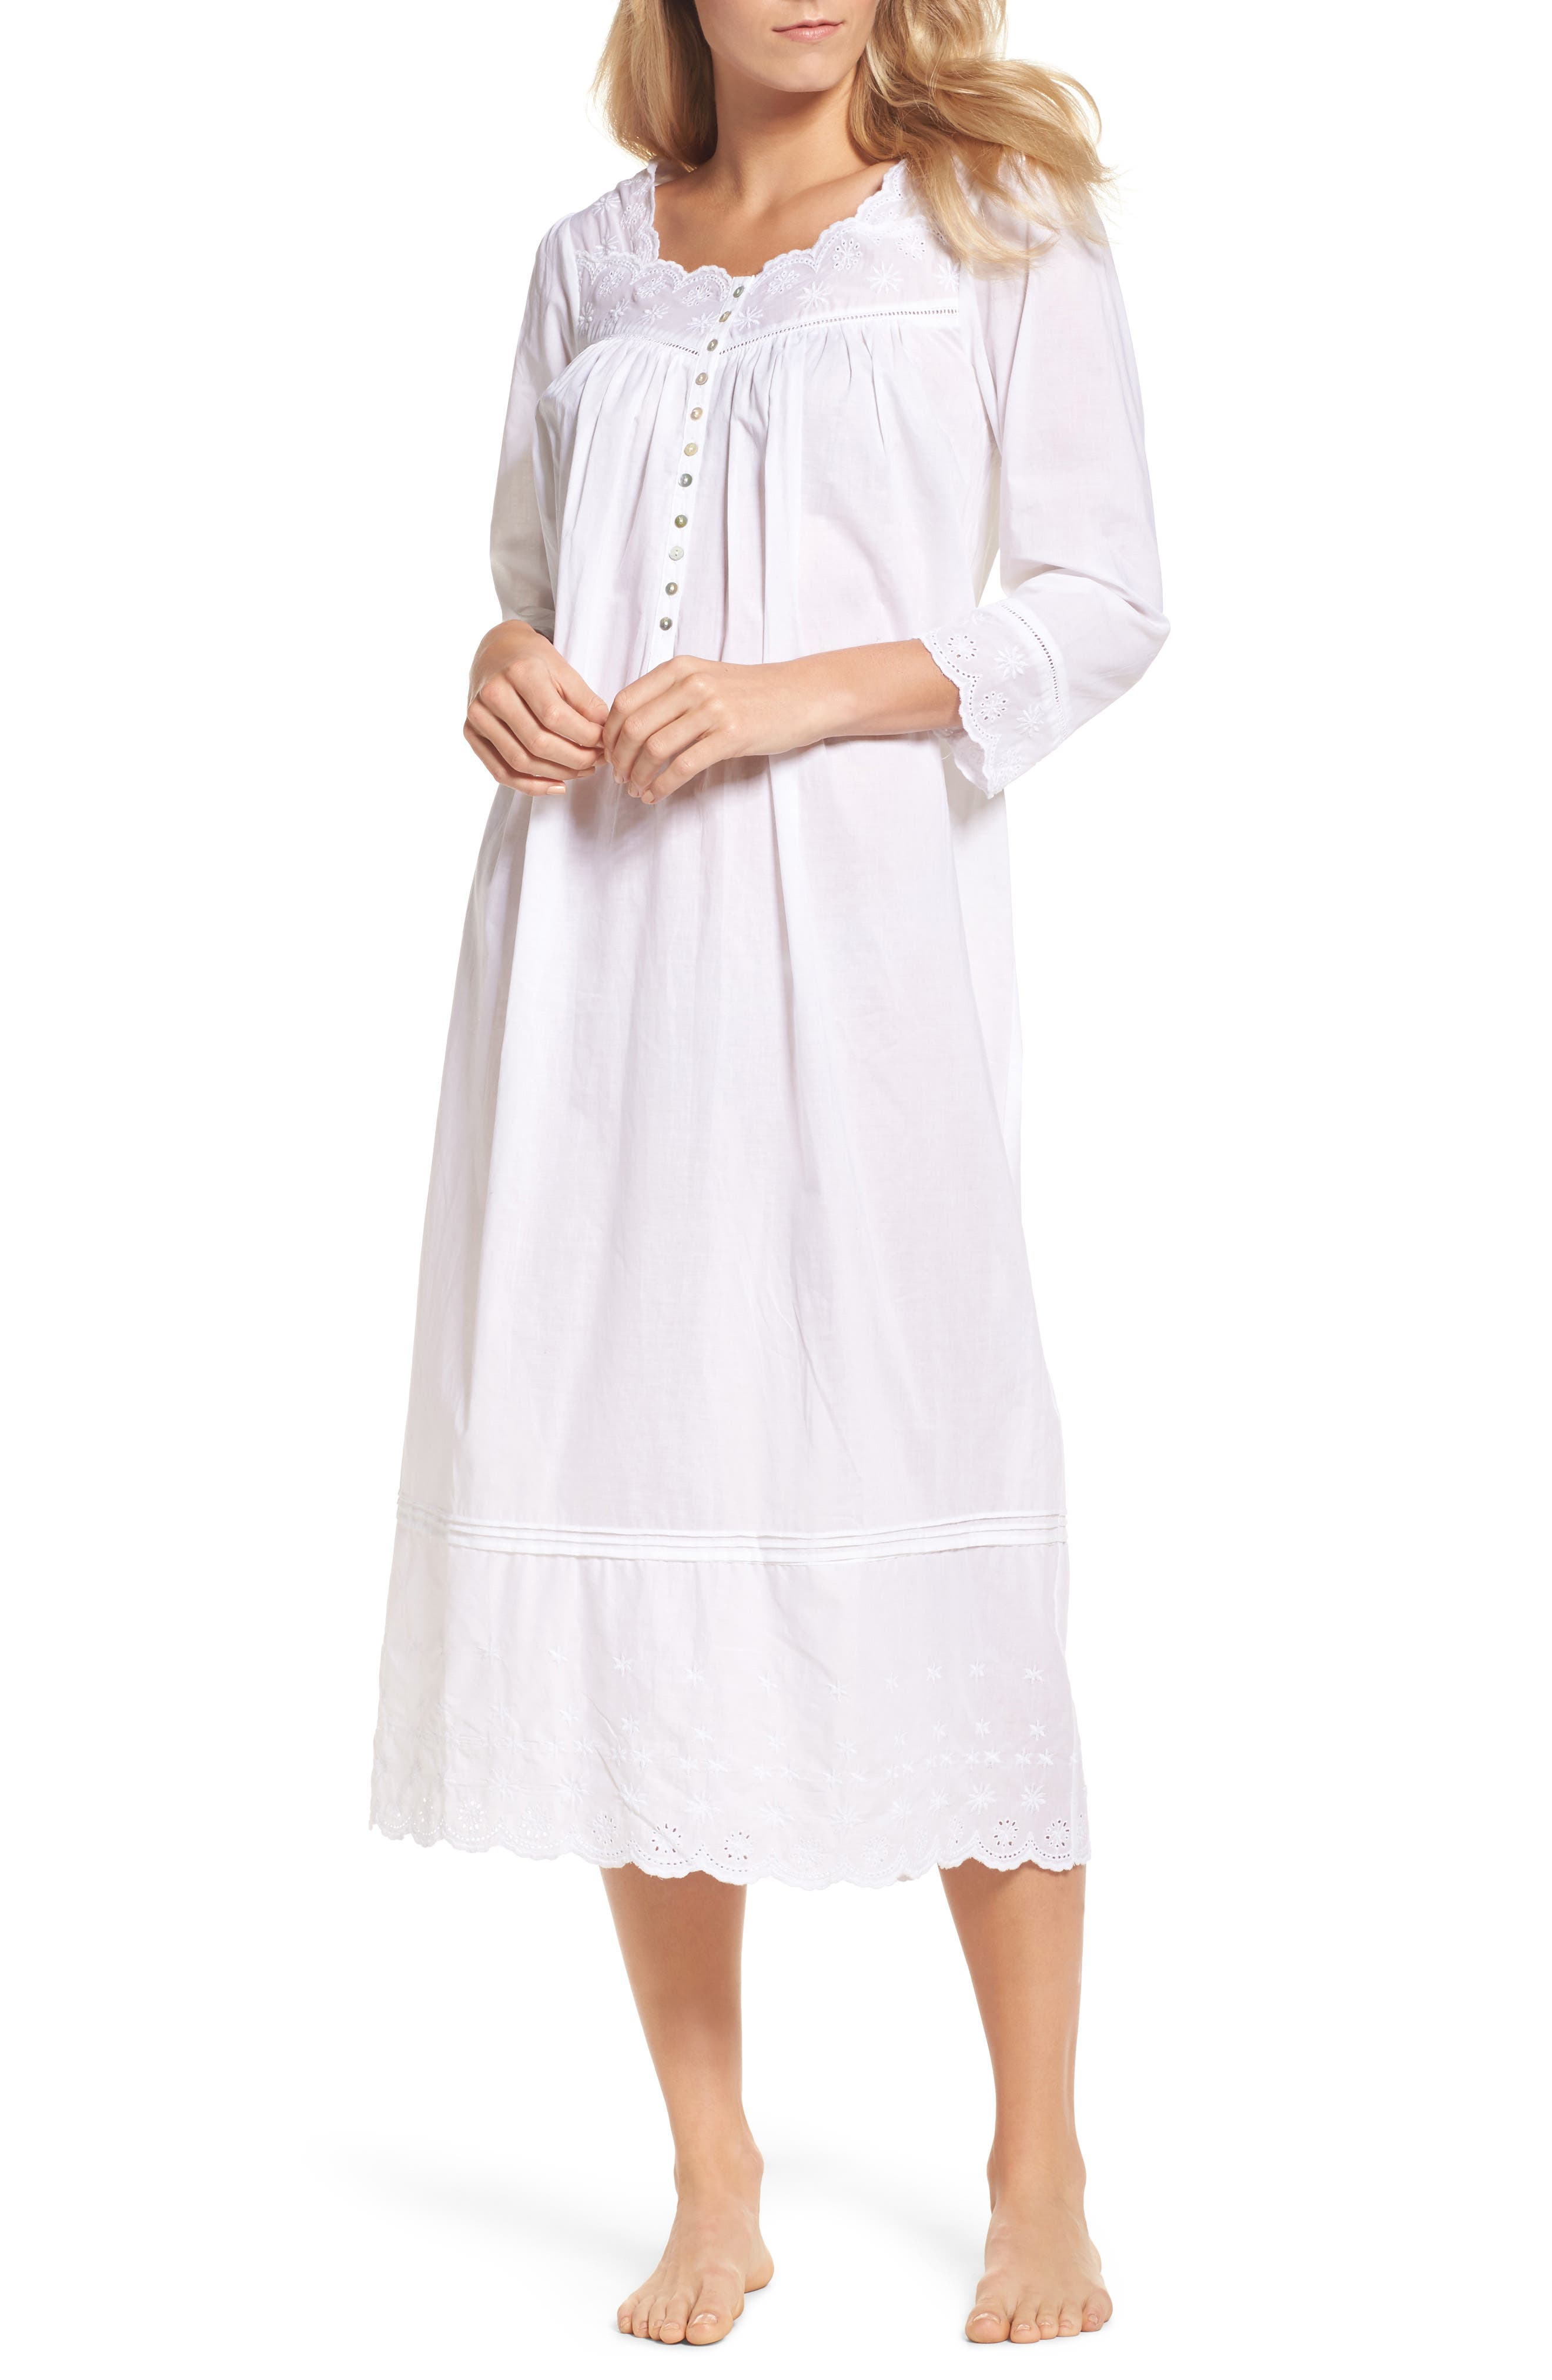 Eyelet Nightgown,                         Main,                         color, White Floral